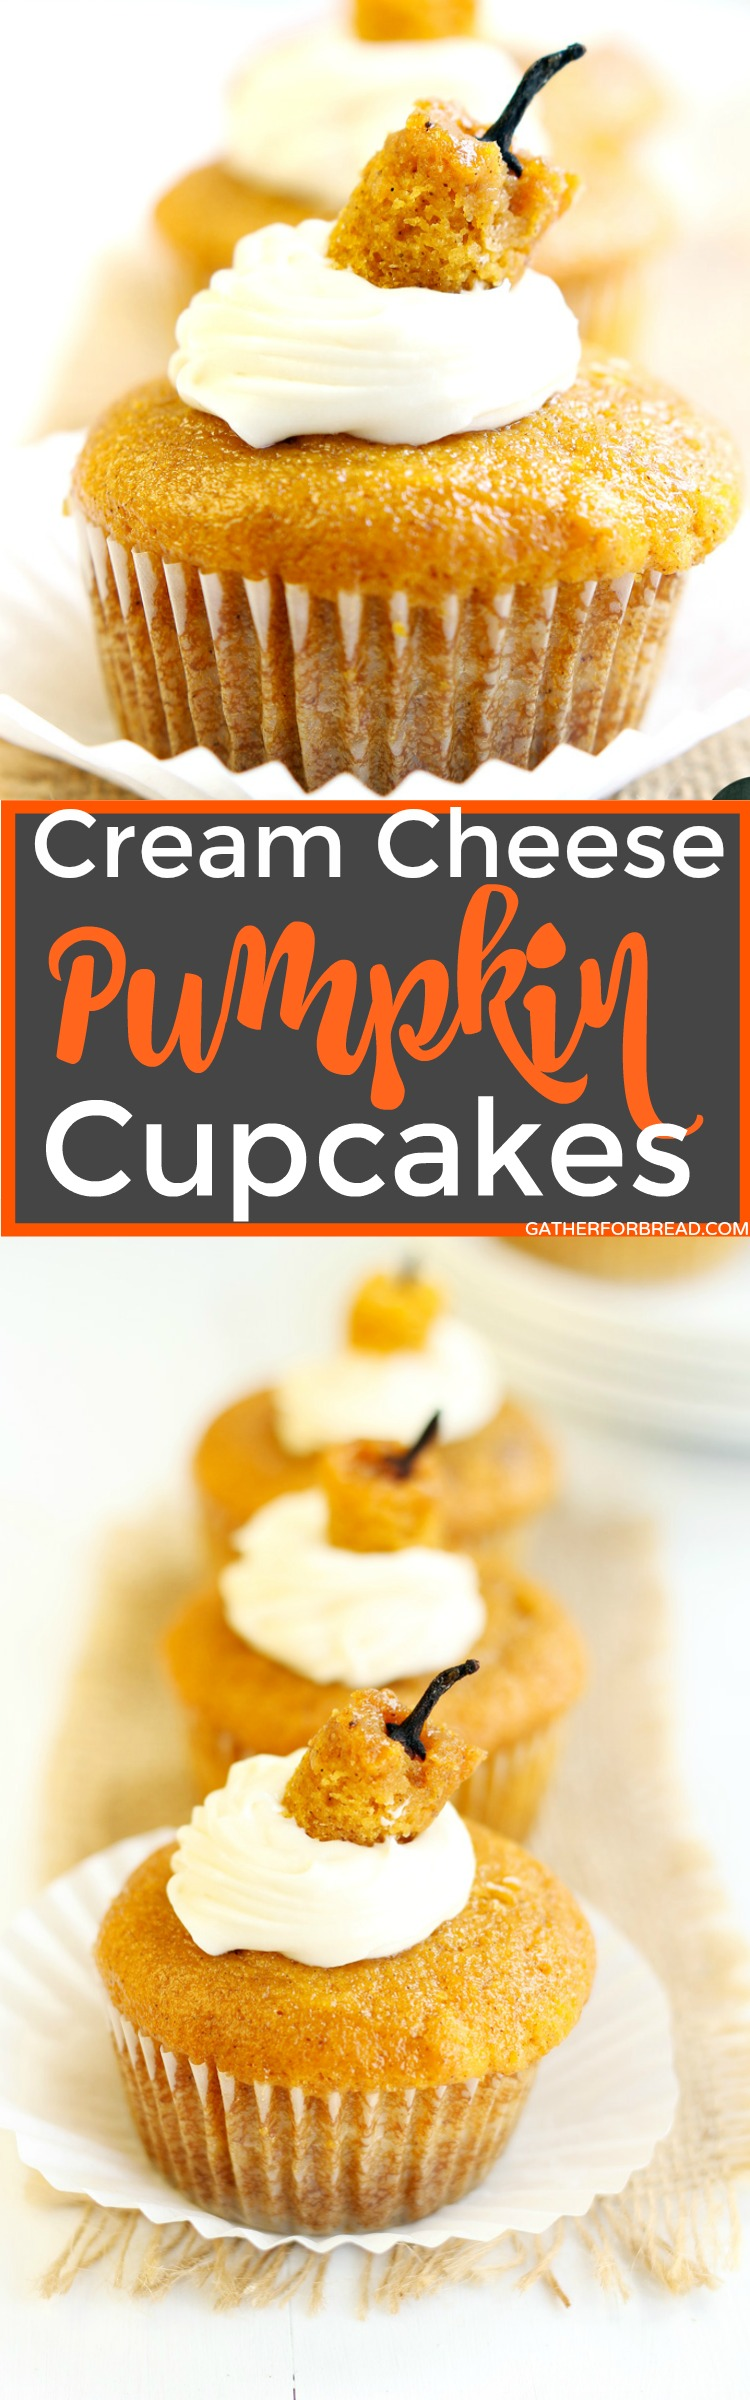 Cream Cheese Pumpkin Cupcakes